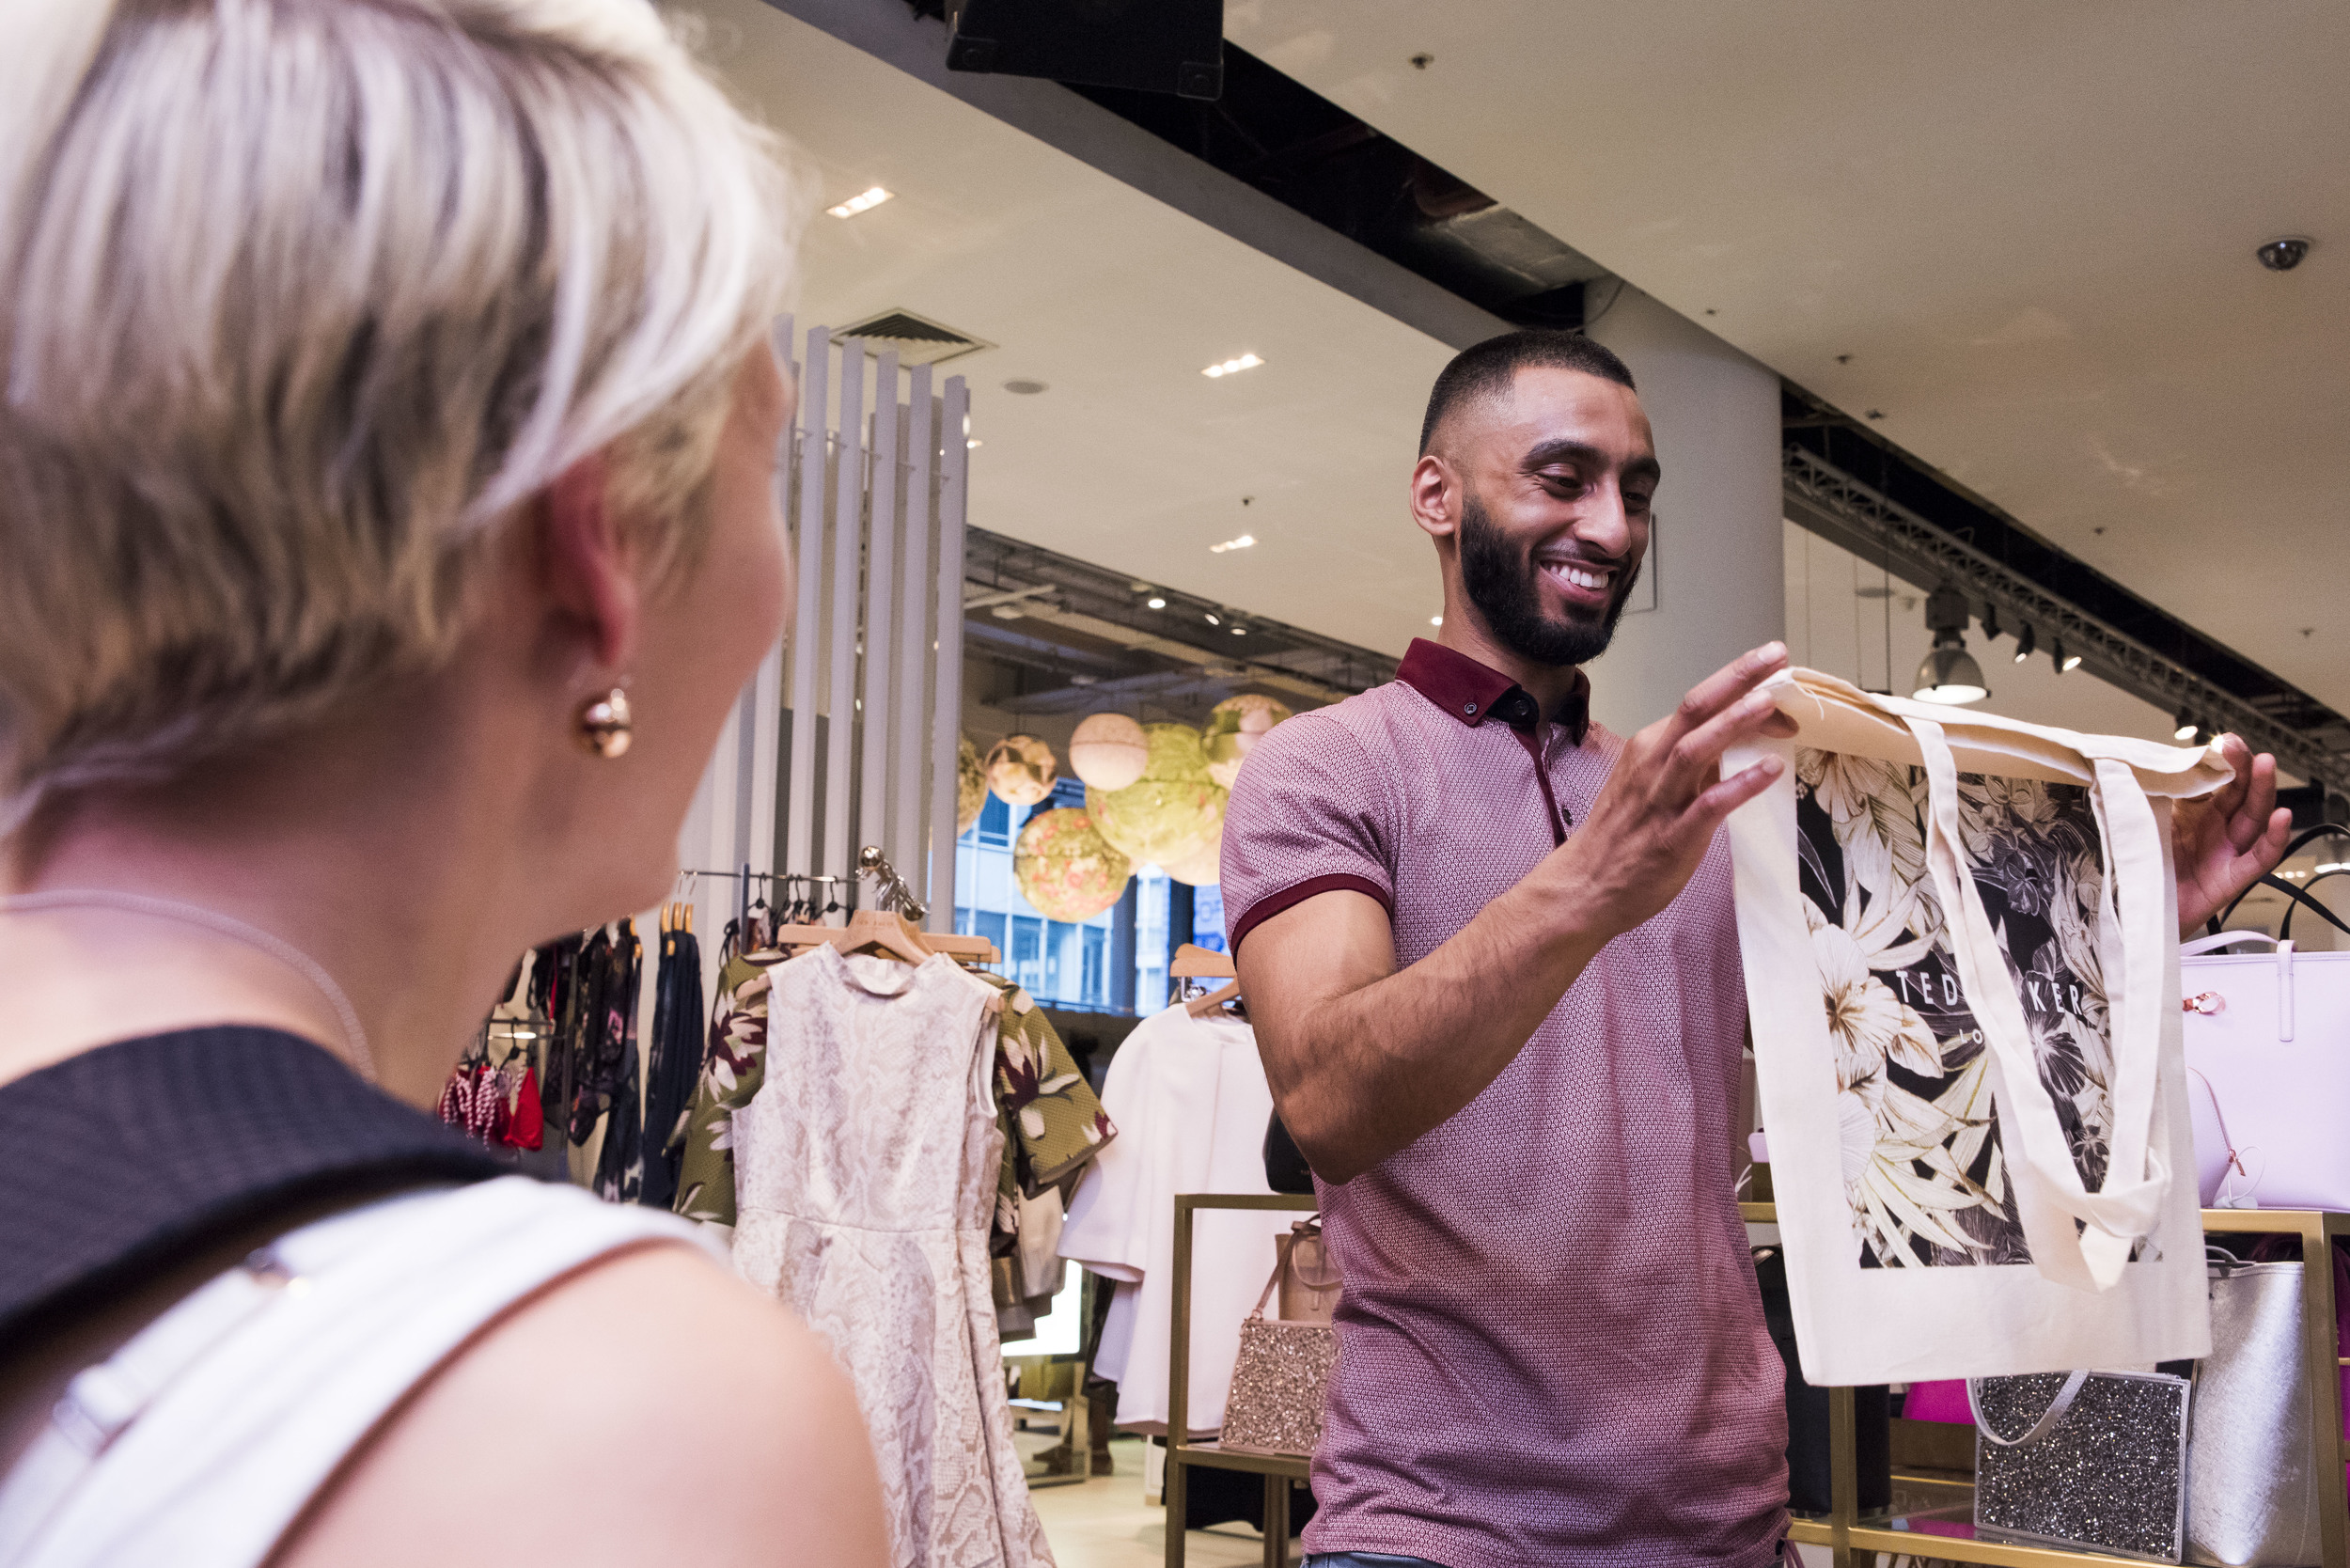 Willa Gebbie live portrait illustration onto tote bags at Ted Baker, Selfridges, London with LiL collective